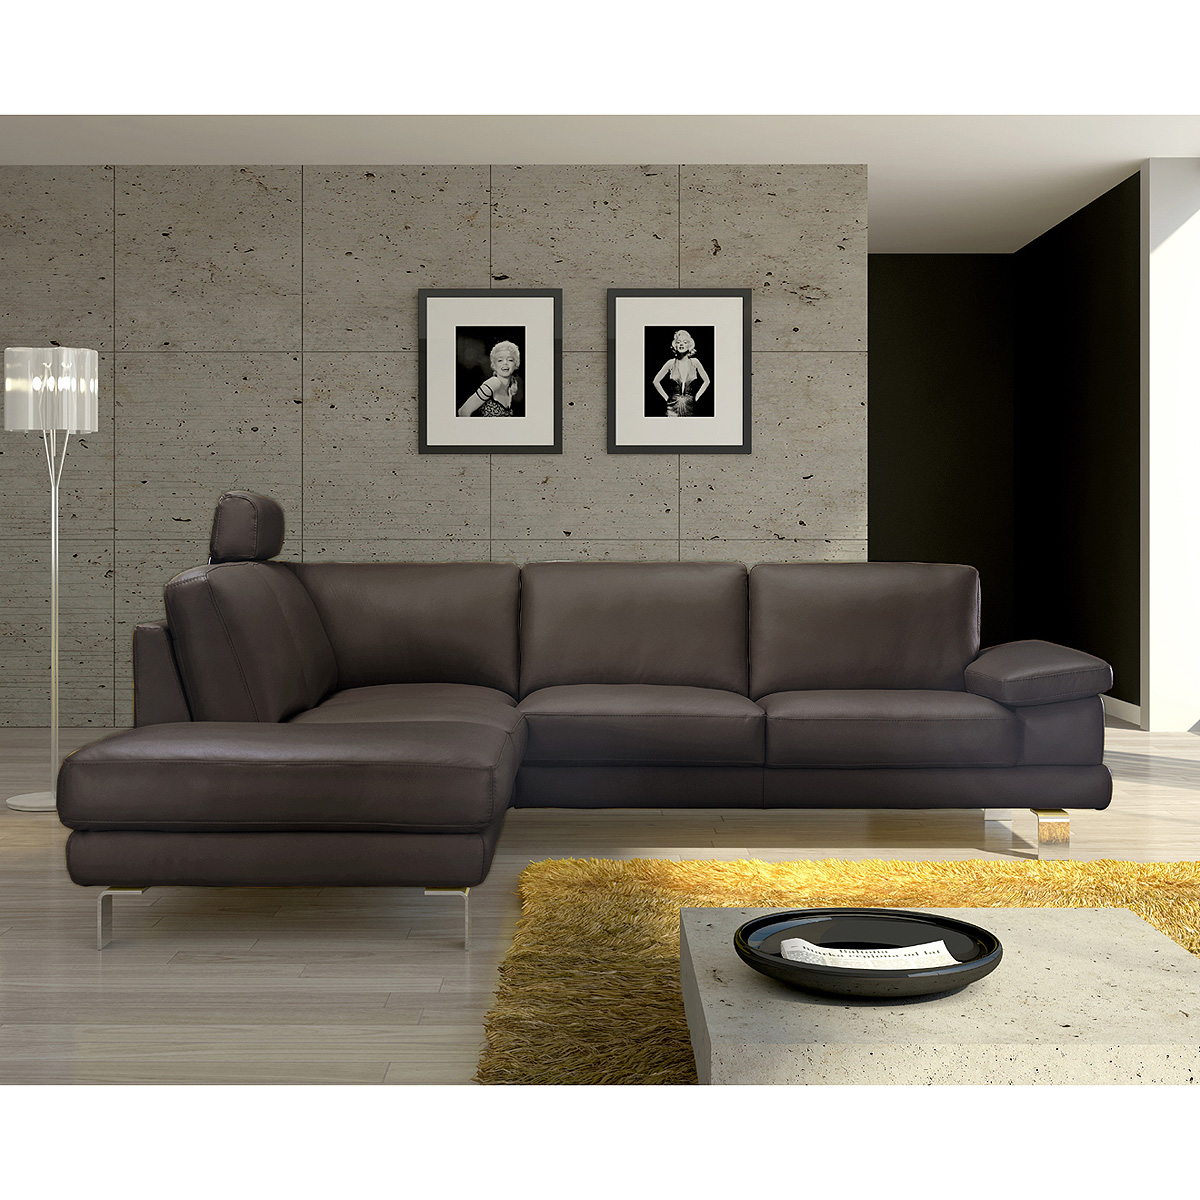 ecksofa mezzos wohnlandschaft sofa polsterm bel in braun. Black Bedroom Furniture Sets. Home Design Ideas